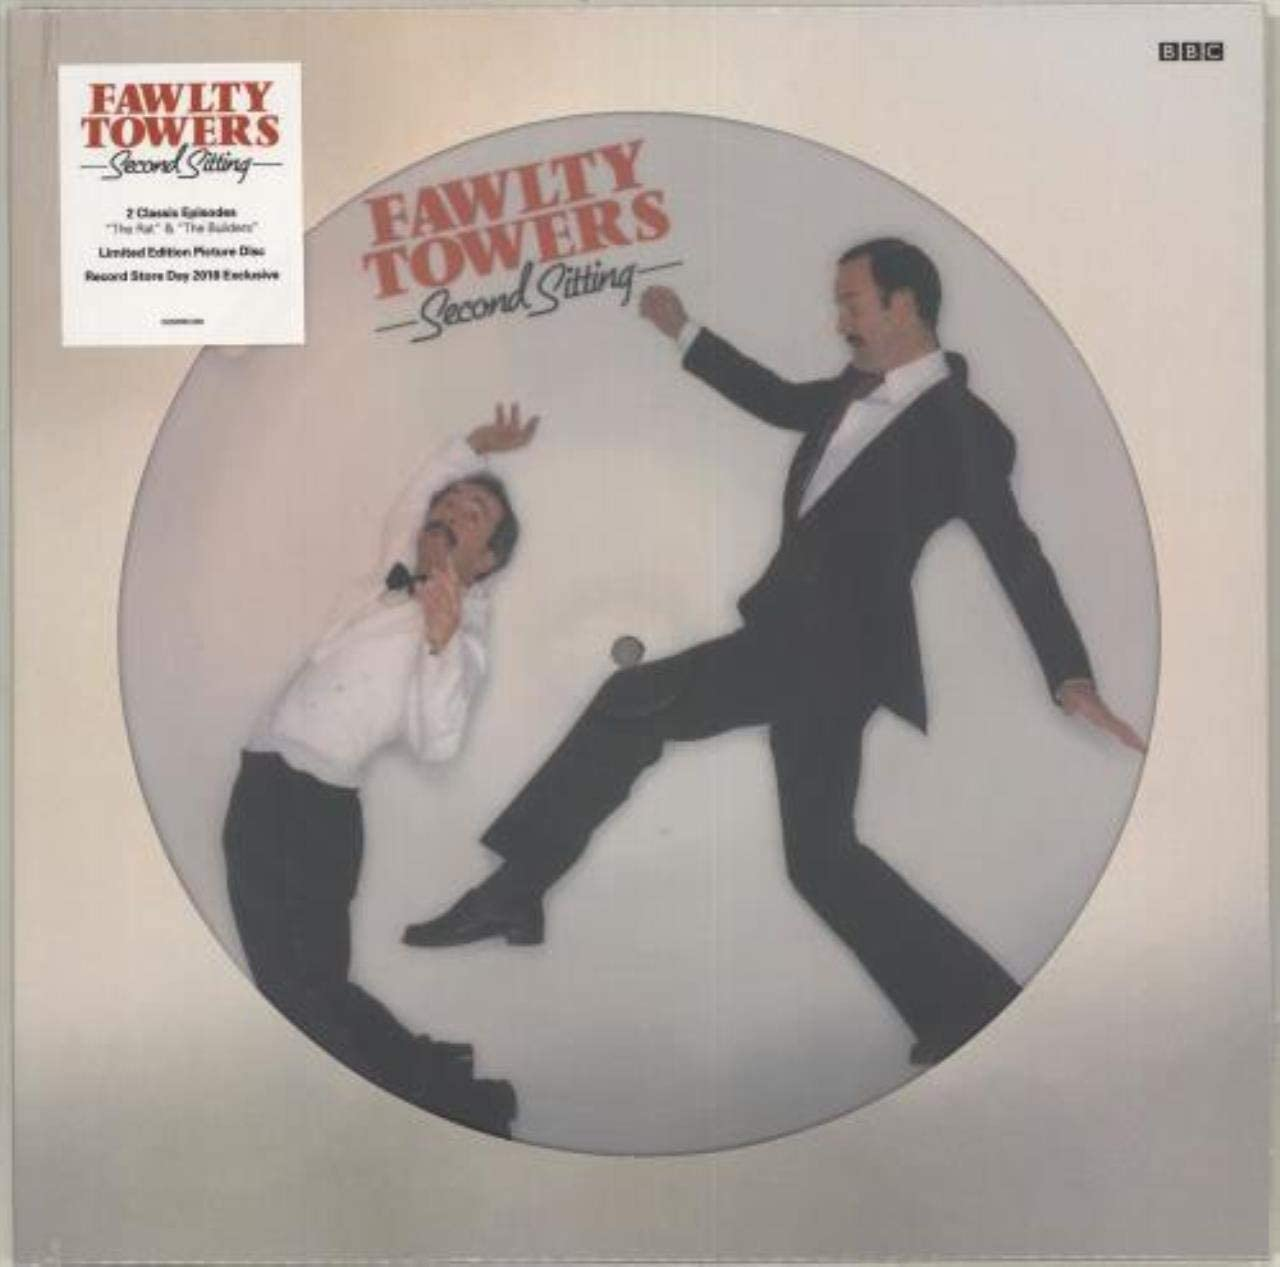 Fawlty Towers - Second Sitting RSD 2018 Picture Disc